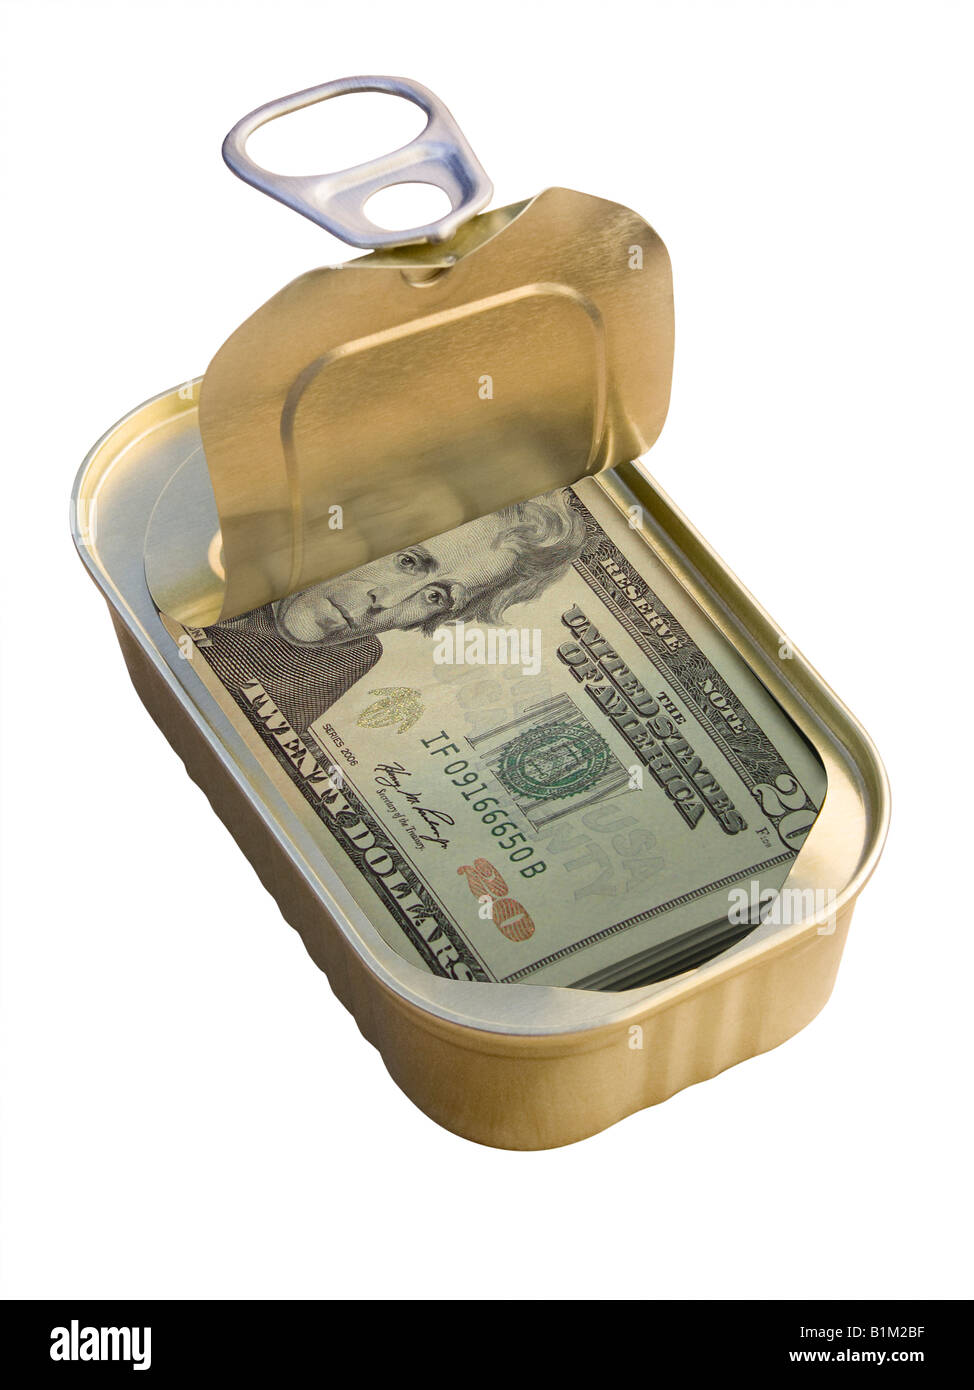 Ring Pull Tin containing 20 Dollar notes on white background - Concept Stock Photo